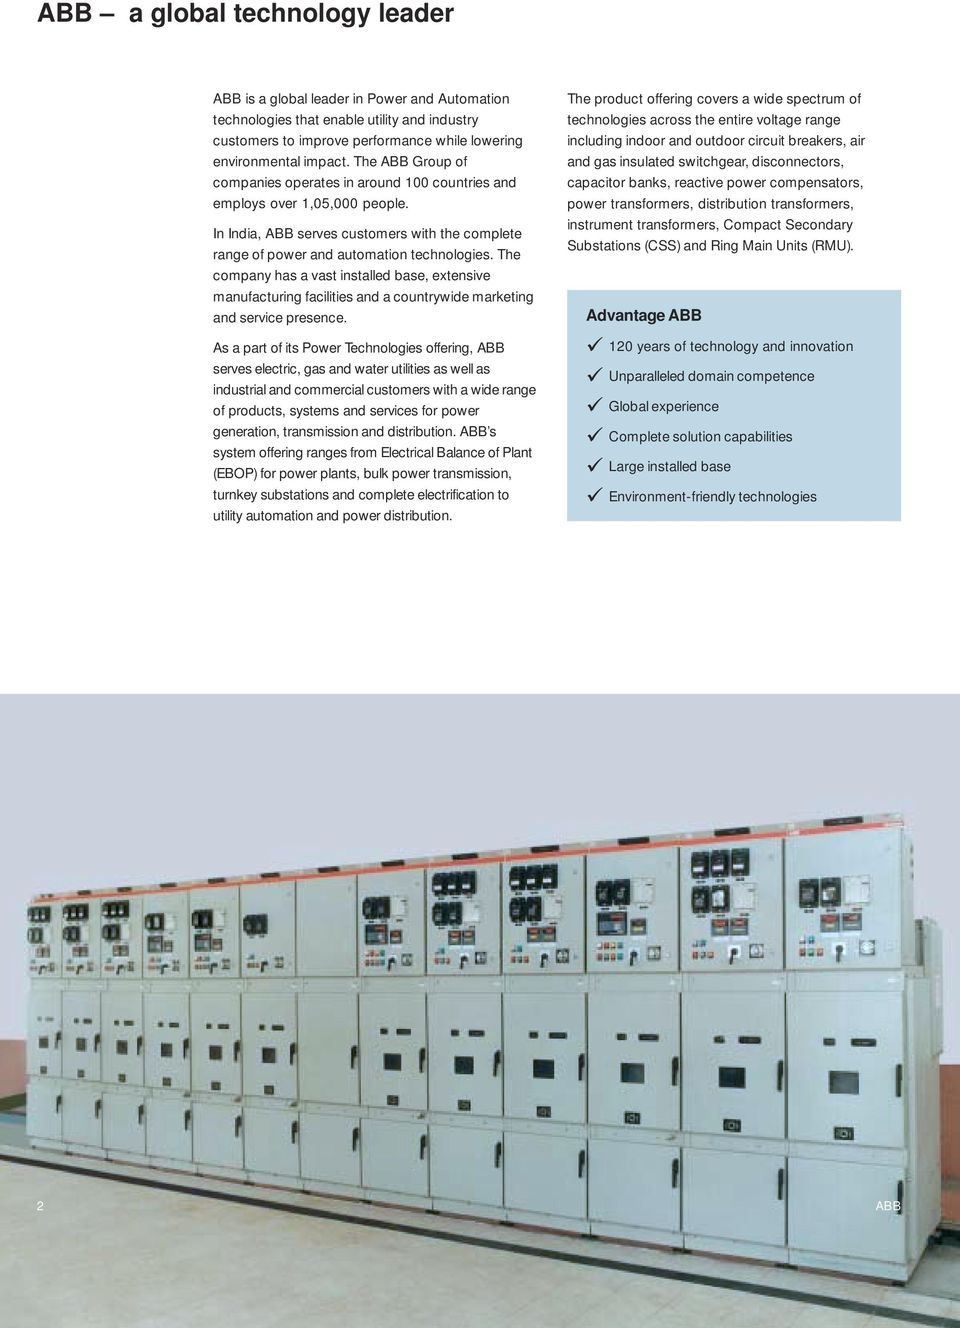 Combined Overcurrent Earth Fault Relay Type Spaj 140 C Pdf Abb The Company Has A Vast Installed Base Extensive Manufacturing Facilities And Countrywide Marketing